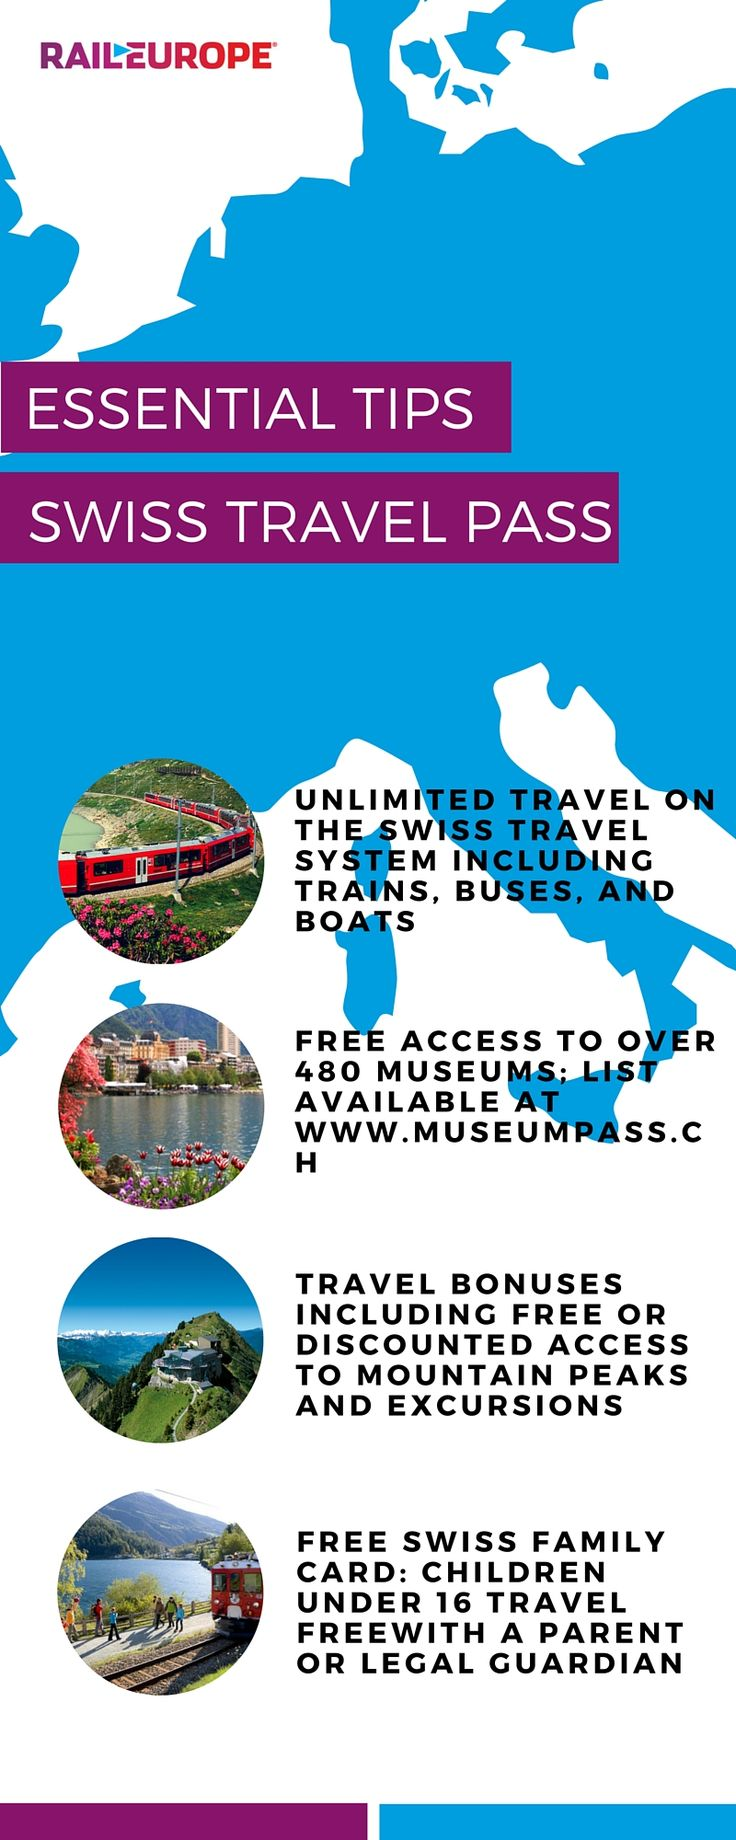 A Swiss Travel Pass covers travel on all Swiss trains, buses, & boats, plus entry into over 480 museums!